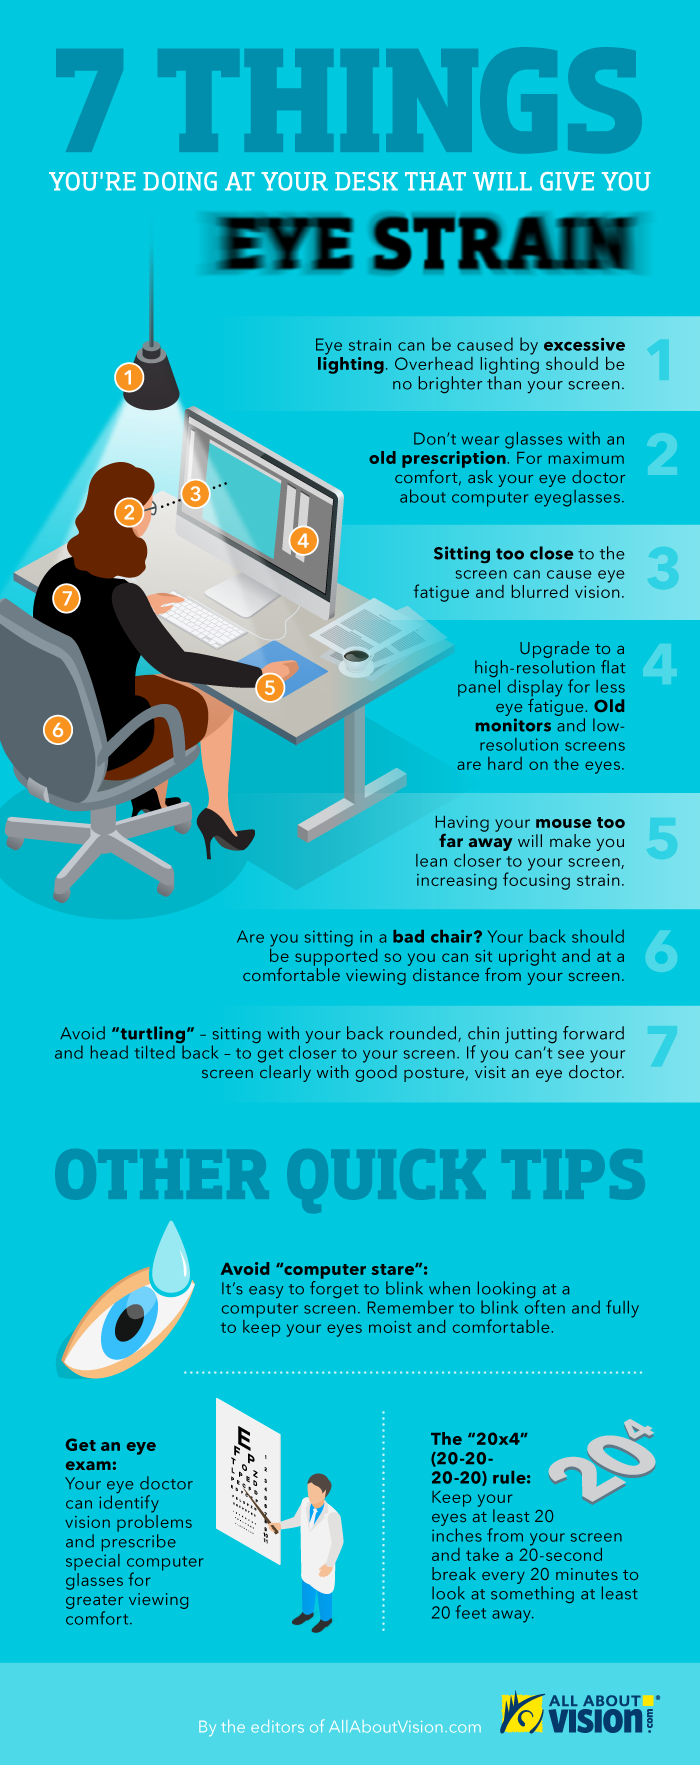 7 Things You Are Doing at Your Desk That Will Give You Eye Strain